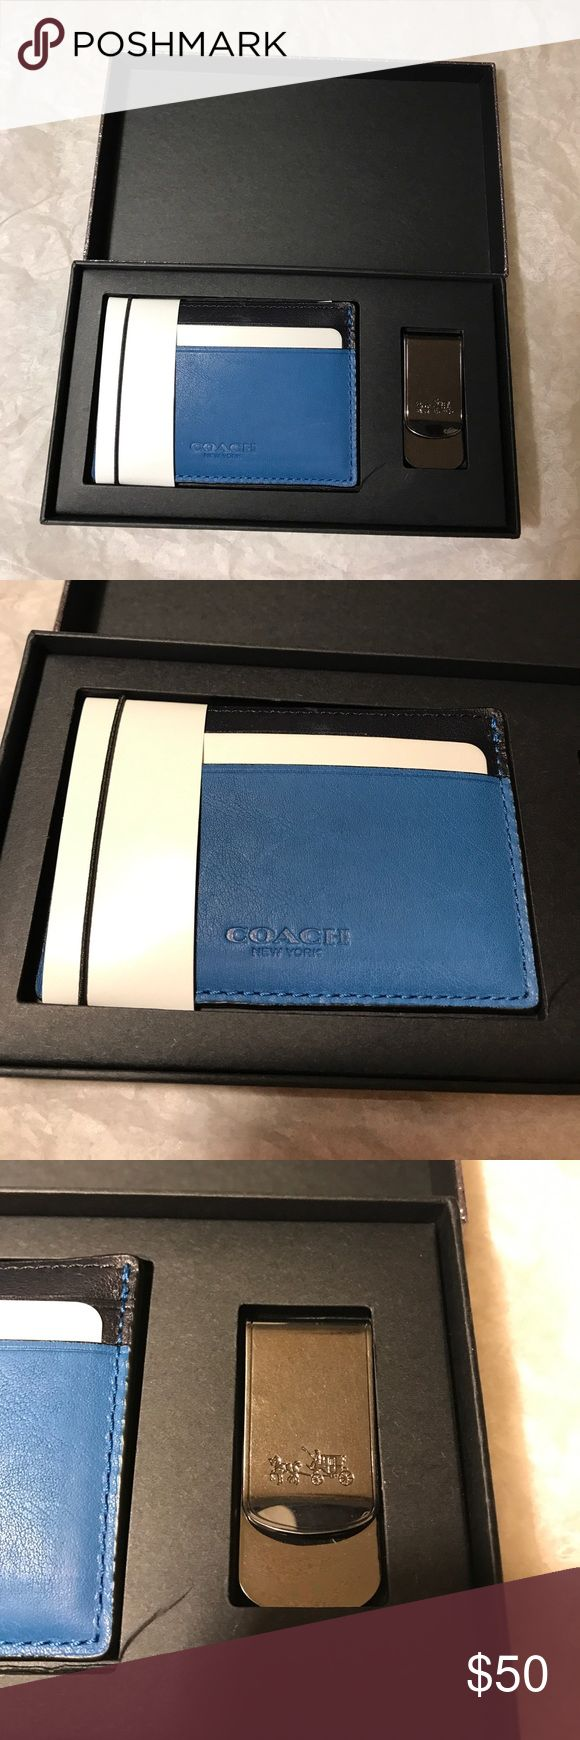 New Coach Men's card holder and Money clip set $75 New Coach Men's card holder and Money clip set $75 blue and black with gun metal clip Coach Accessories Key & Card Holders